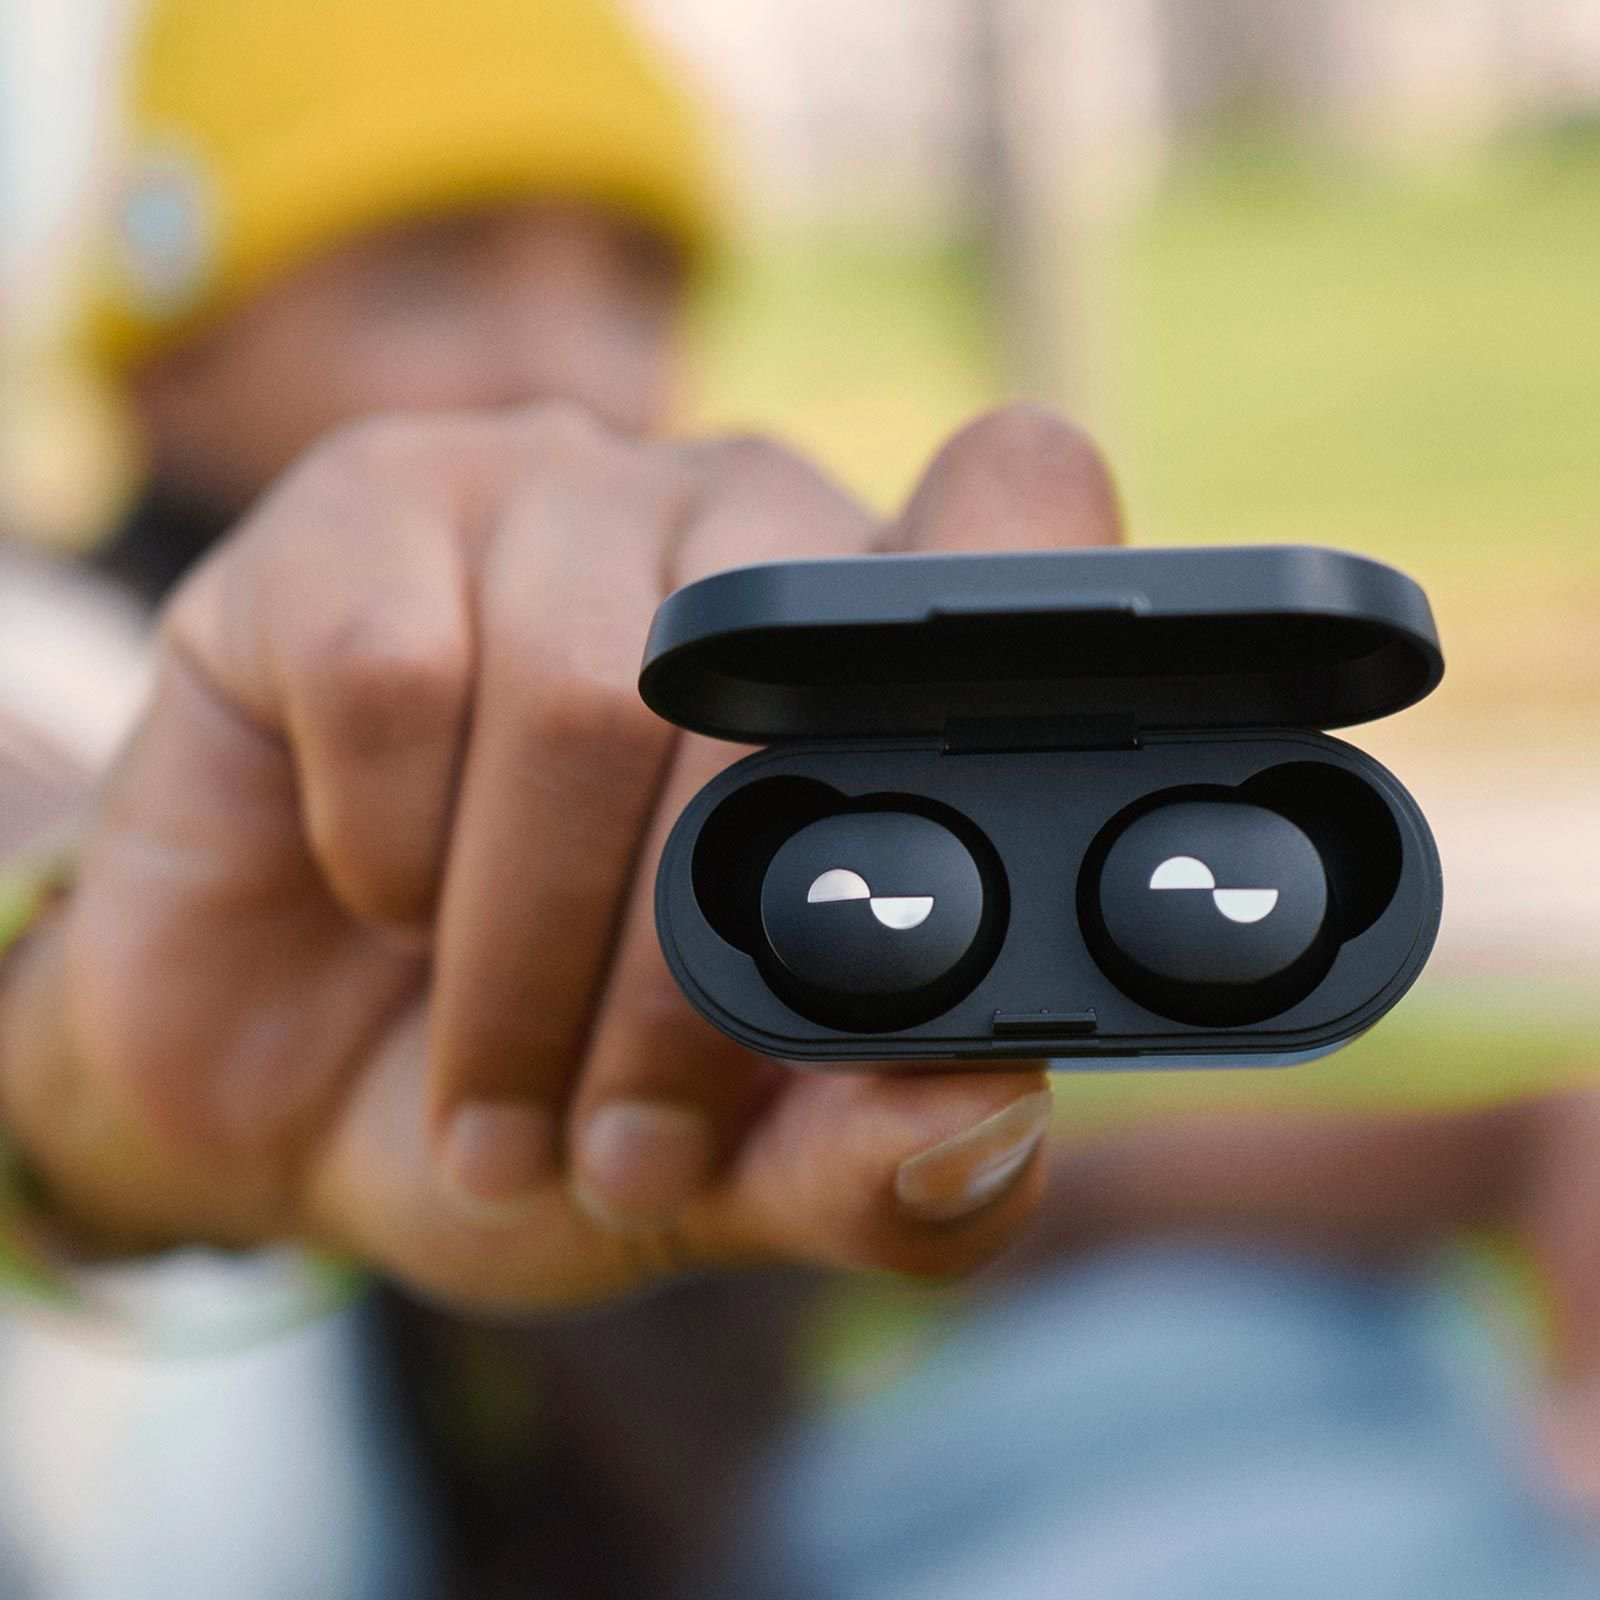 Close-up of NURABUDS earbuds in battery case with person holding them out-of-focus